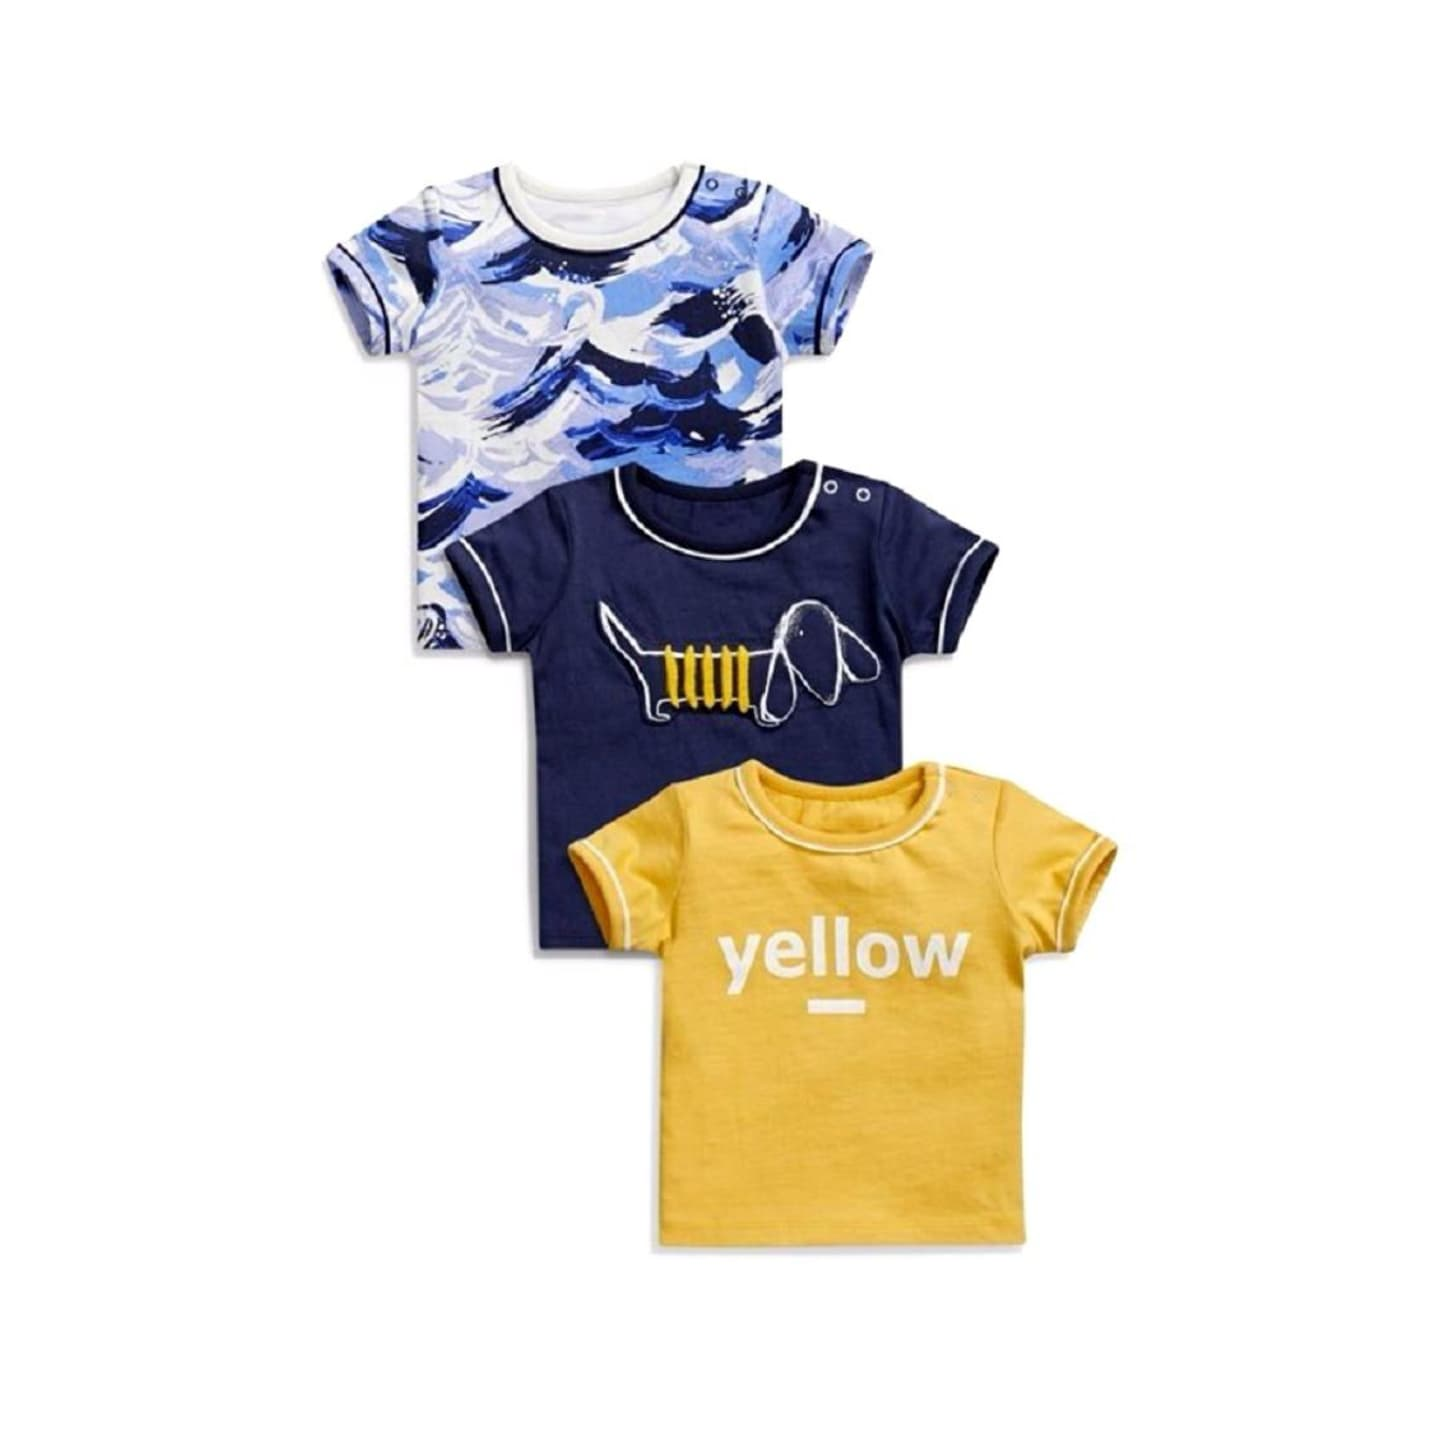 NEXT Baby T-Shirts 3 pack - Stockpoint Apparel Outlet